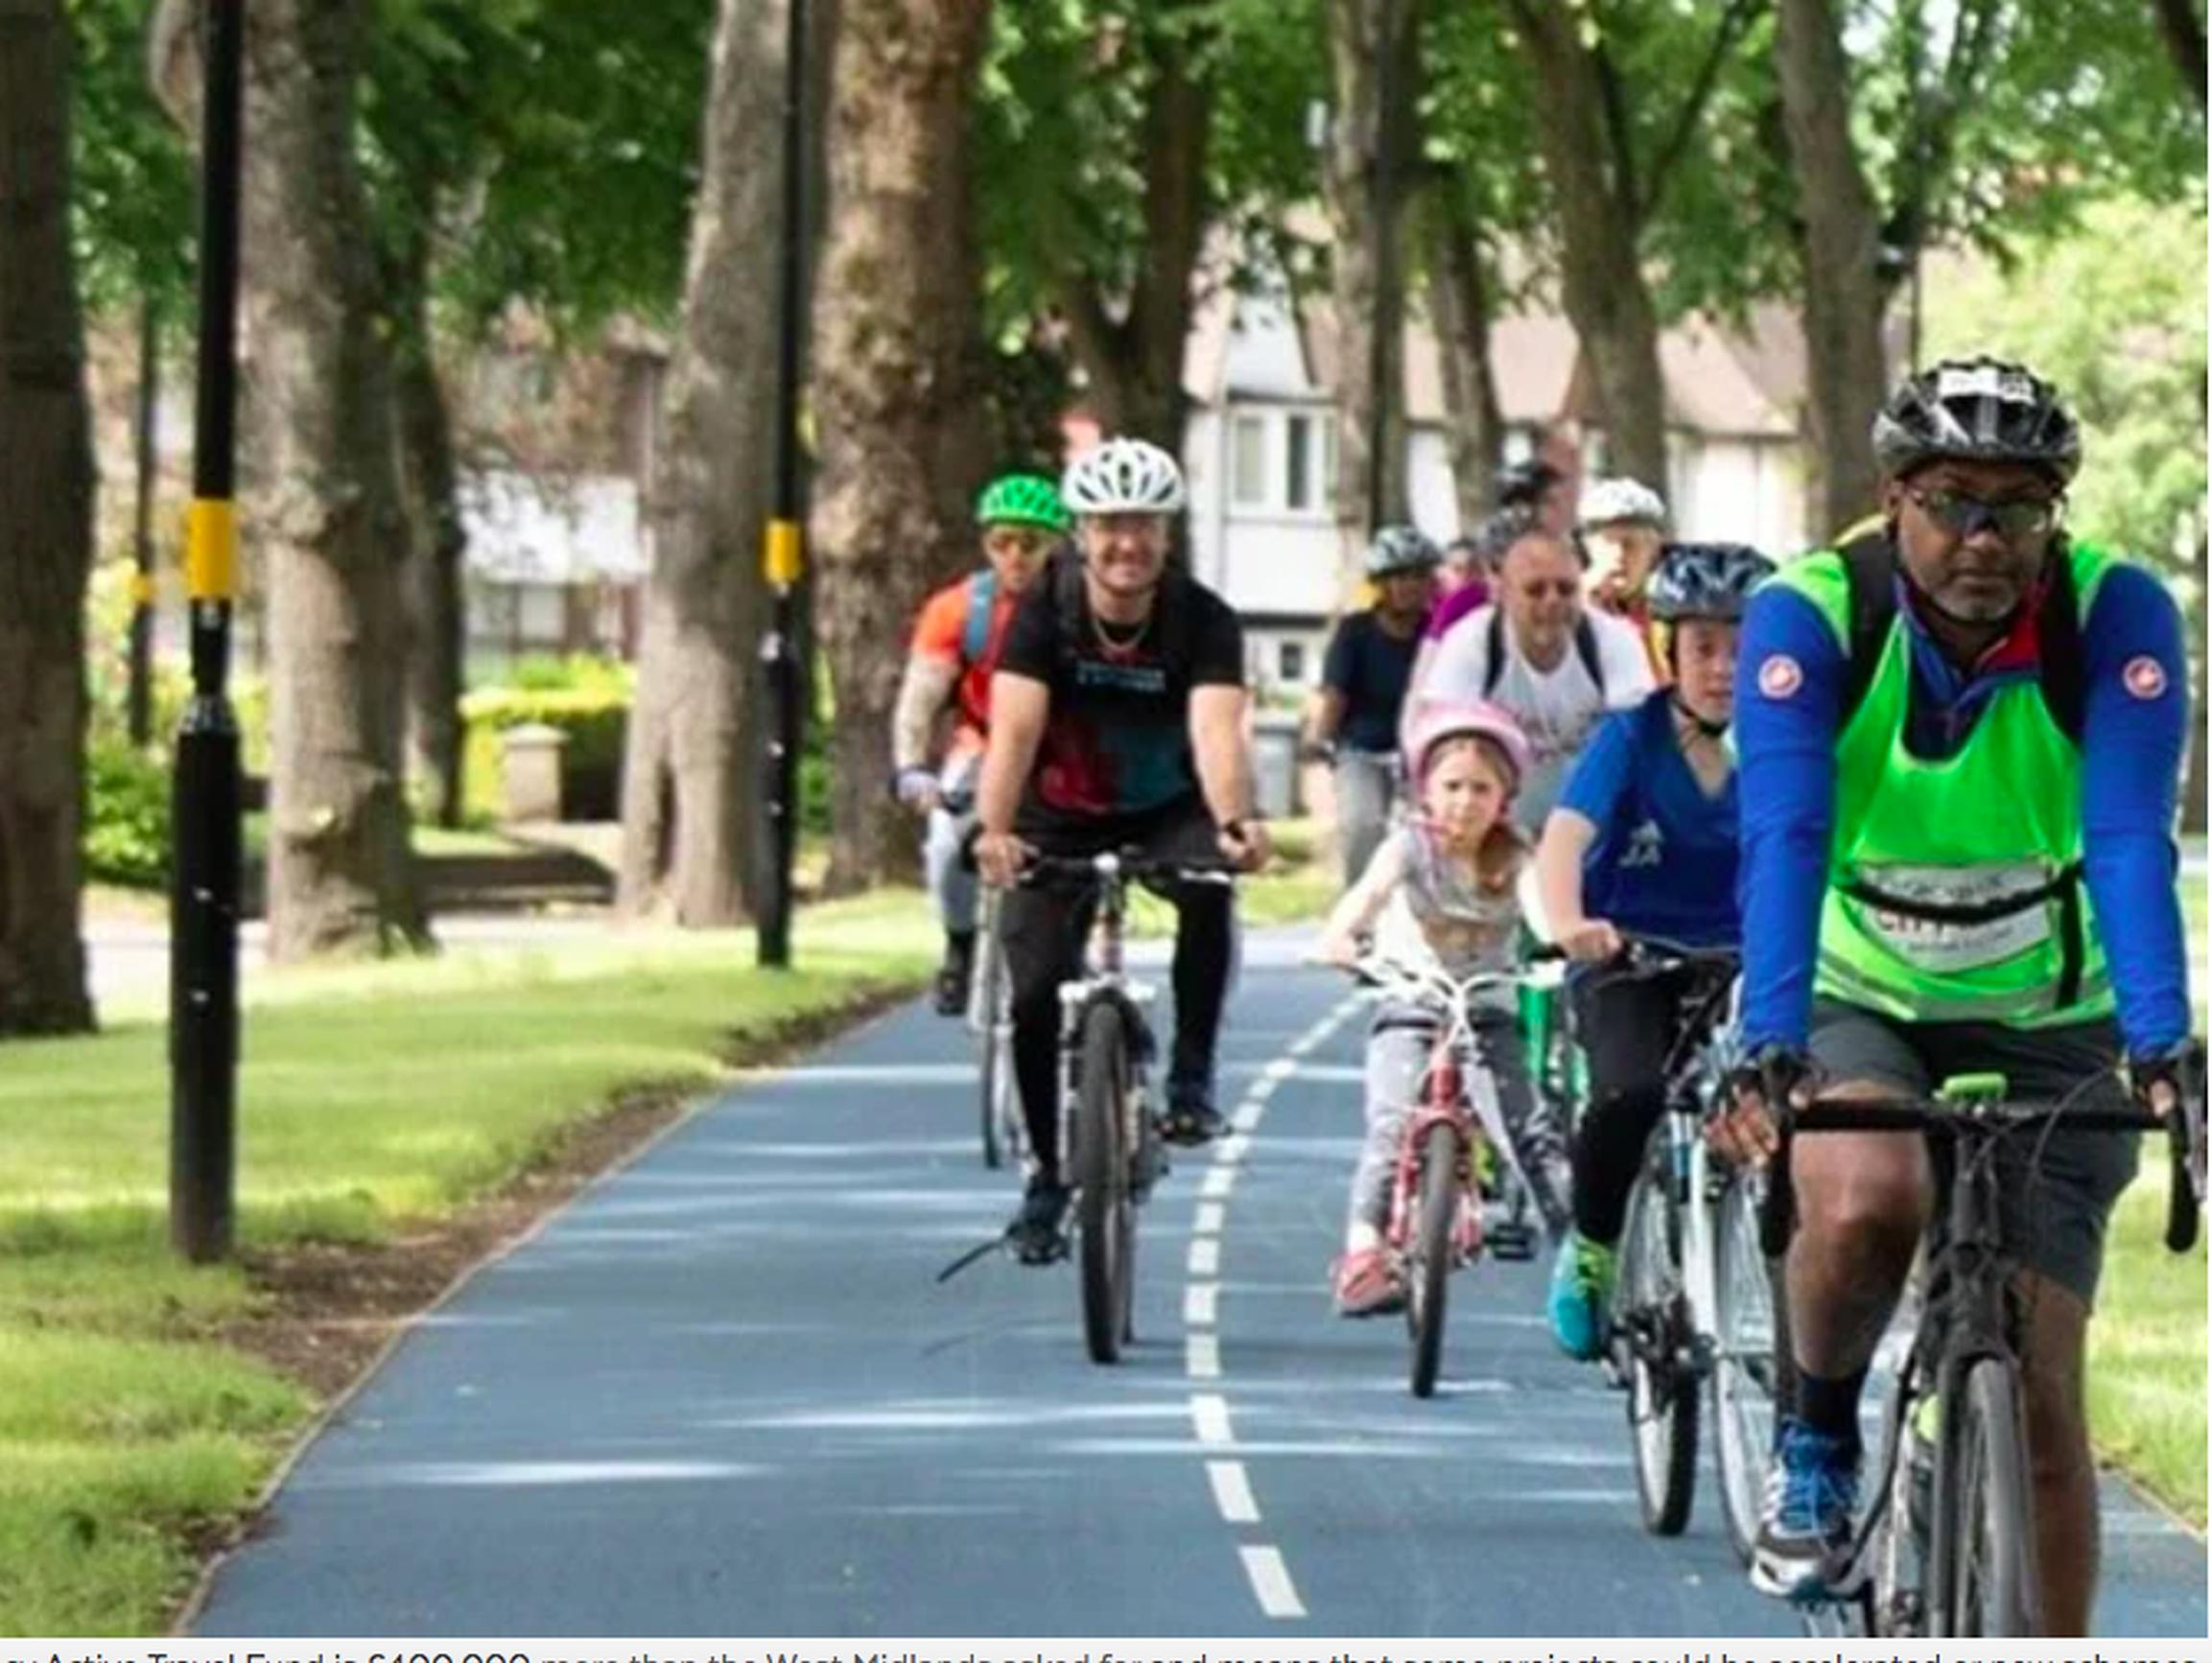 More than 45 cycling and walking schemes have been earmarked for urgent delivery in the West Midlands